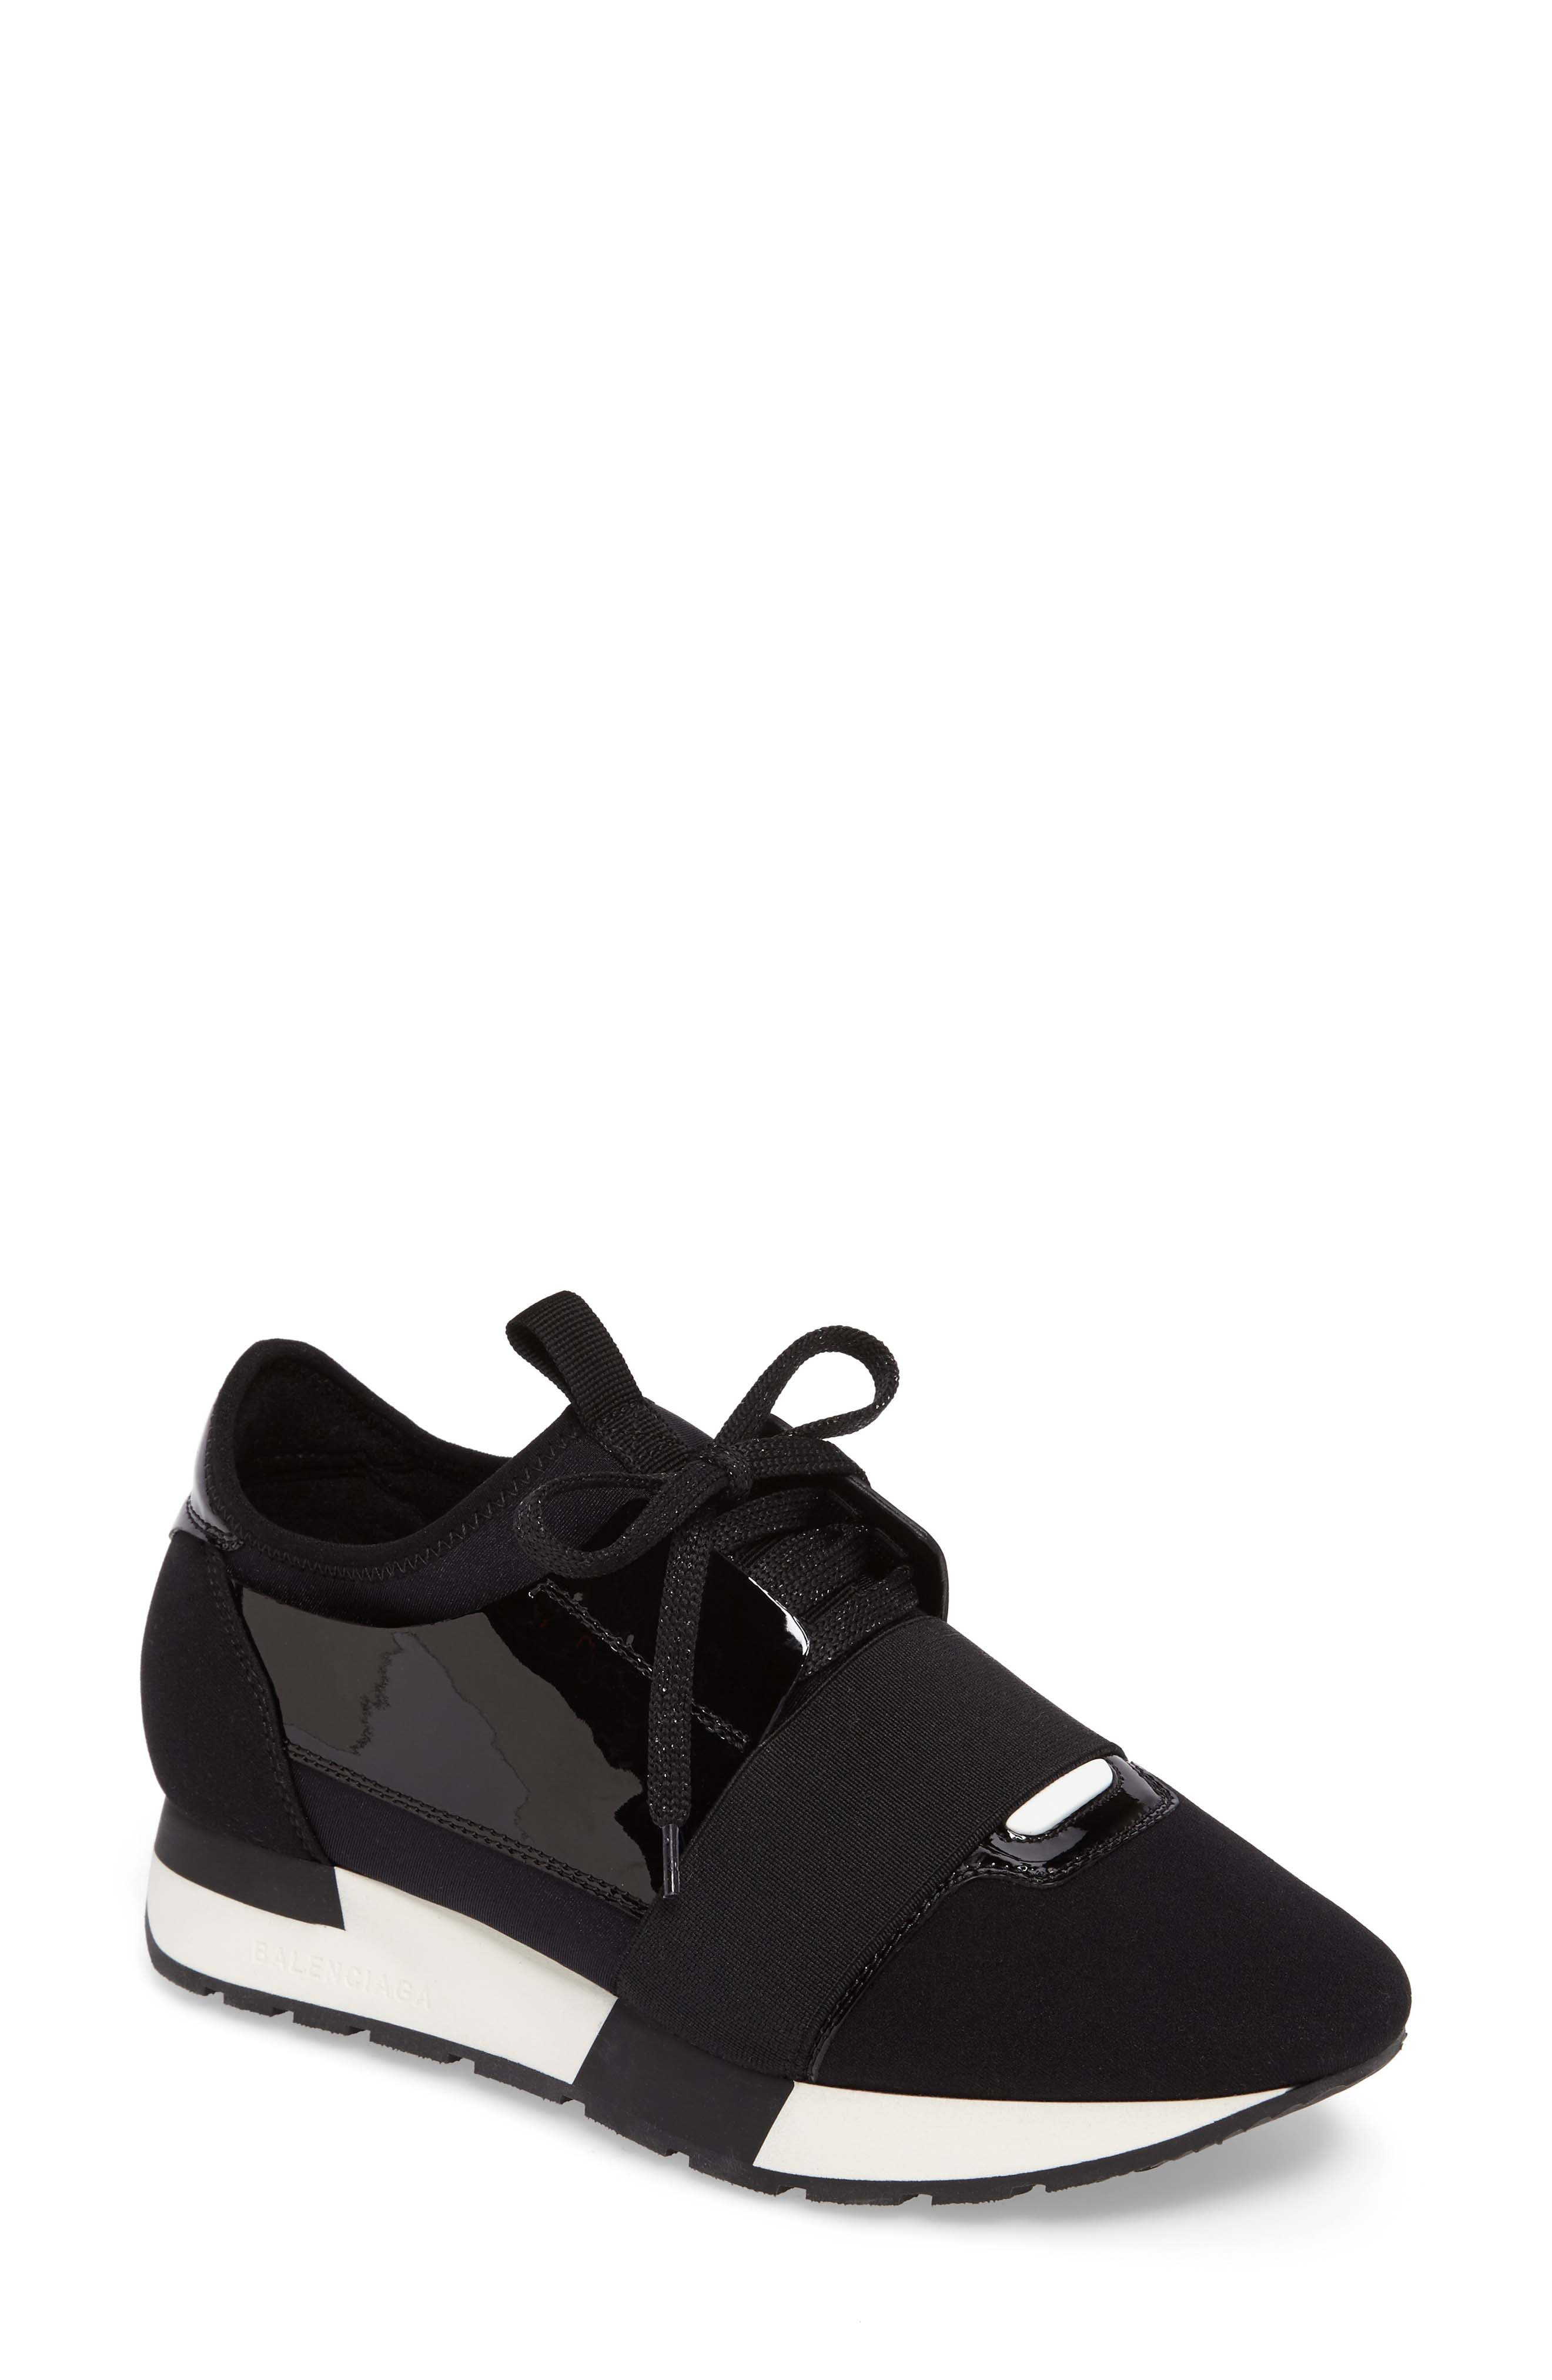 Balenciaga Trainer Sneakers (Women)